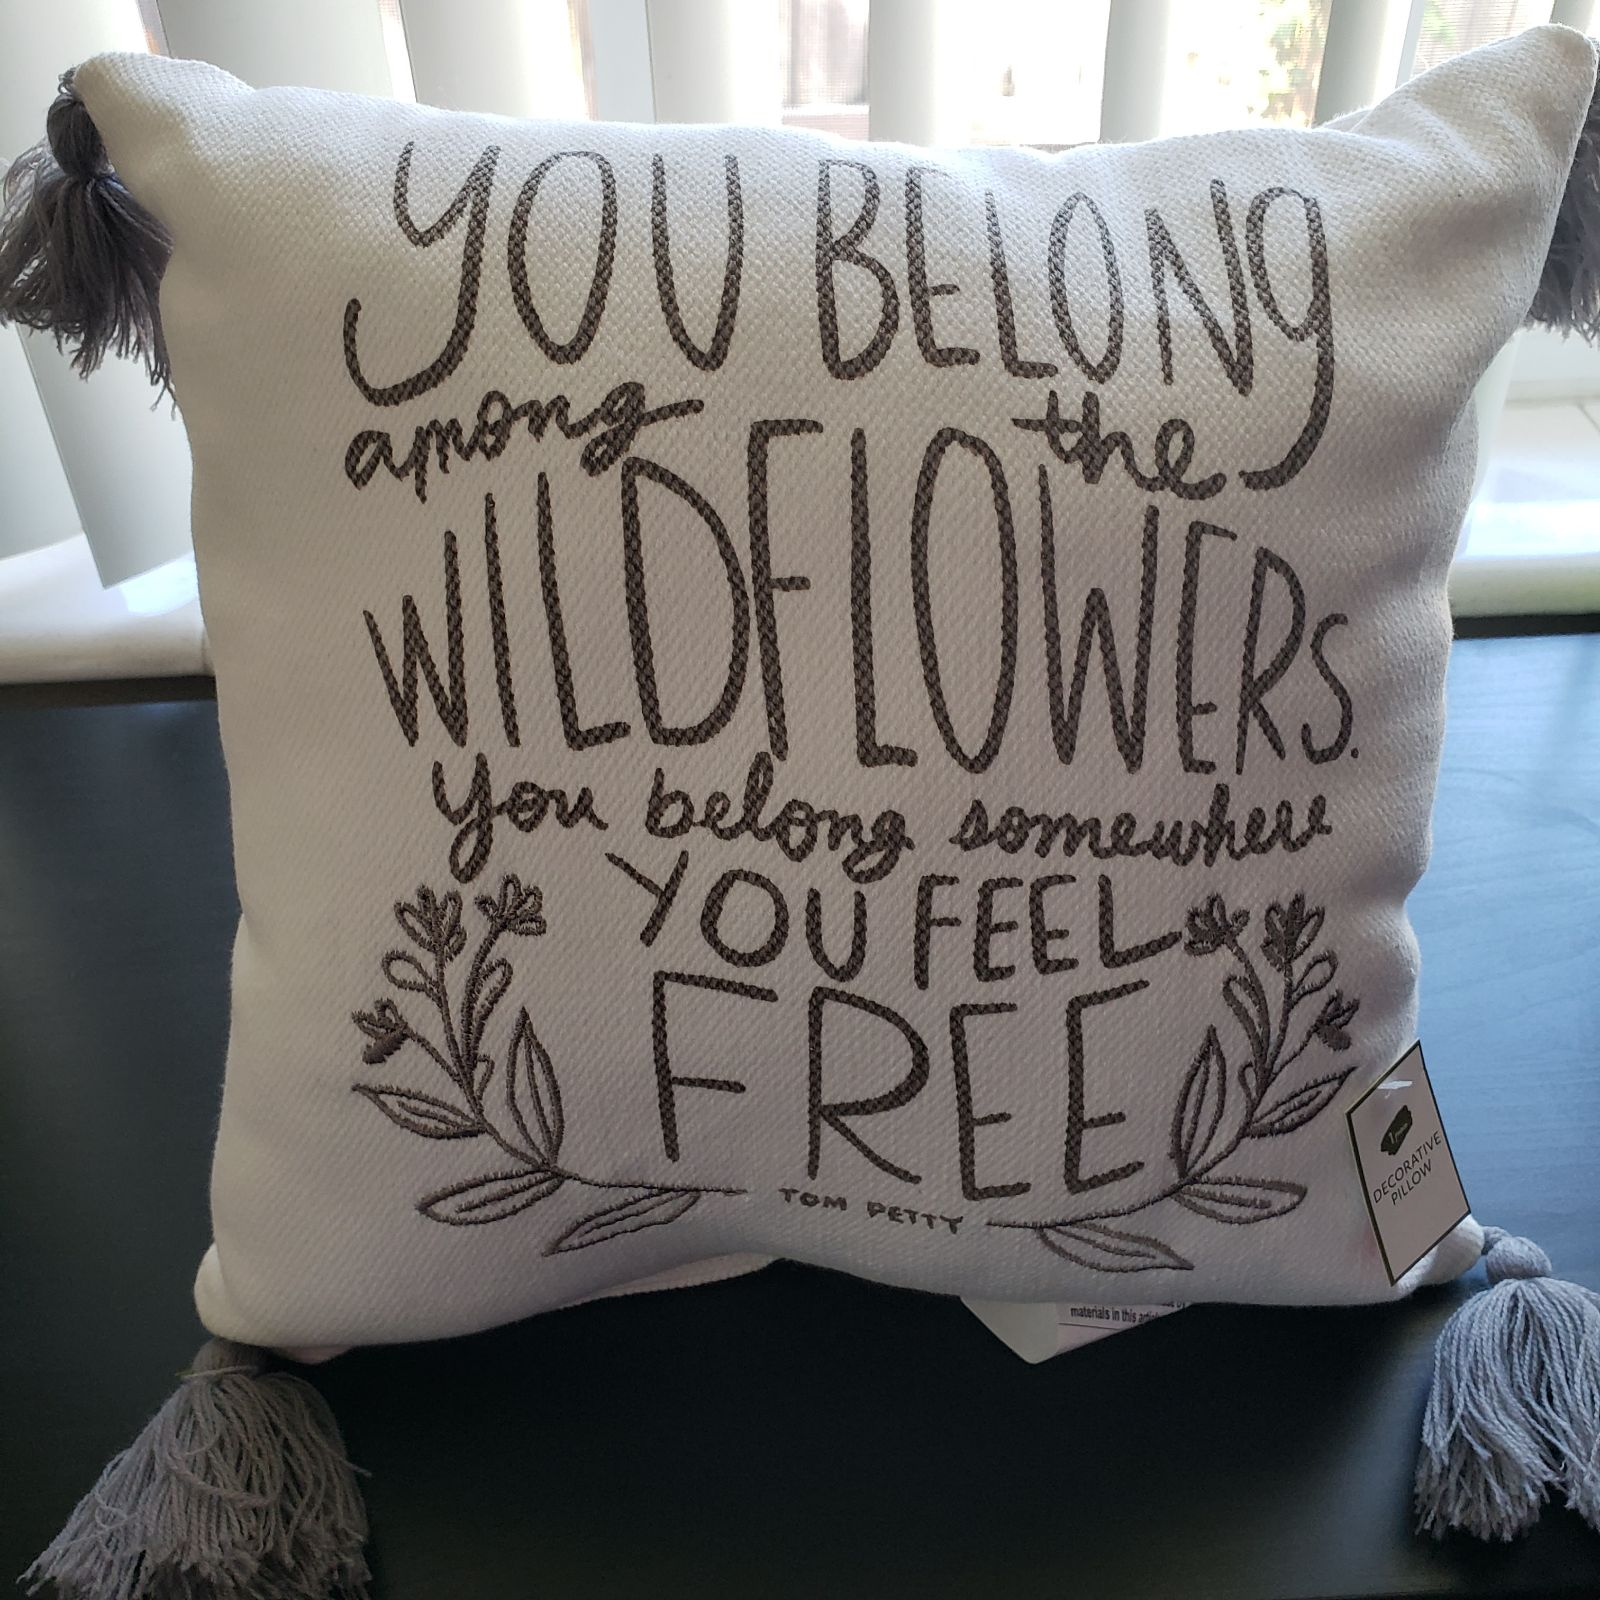 NEW Target Wildflowers Tom Petty Pillow